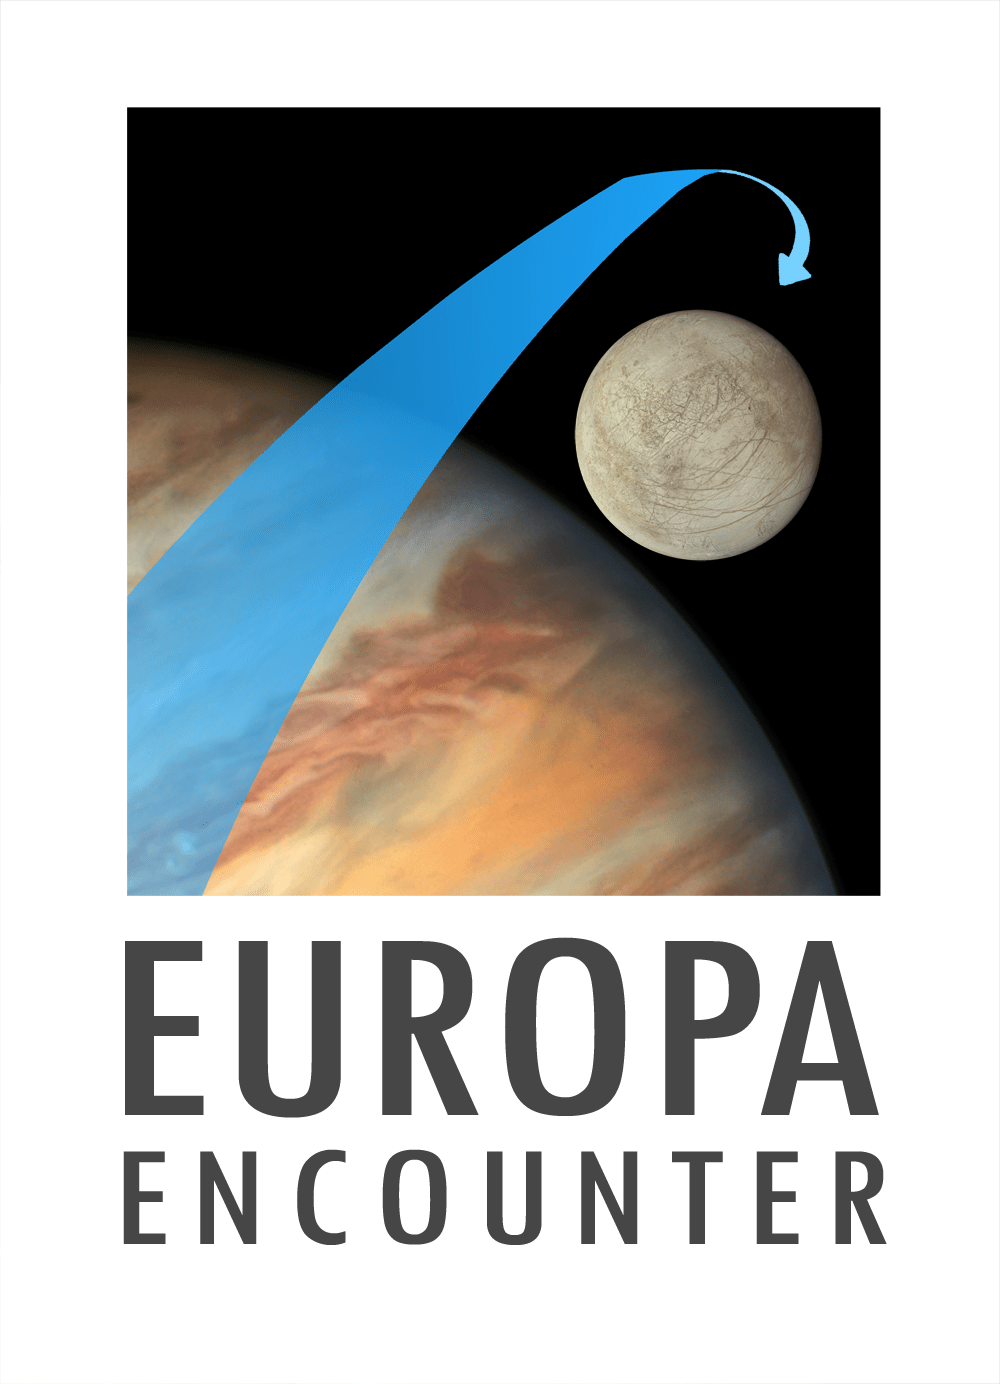 Europa Encounter